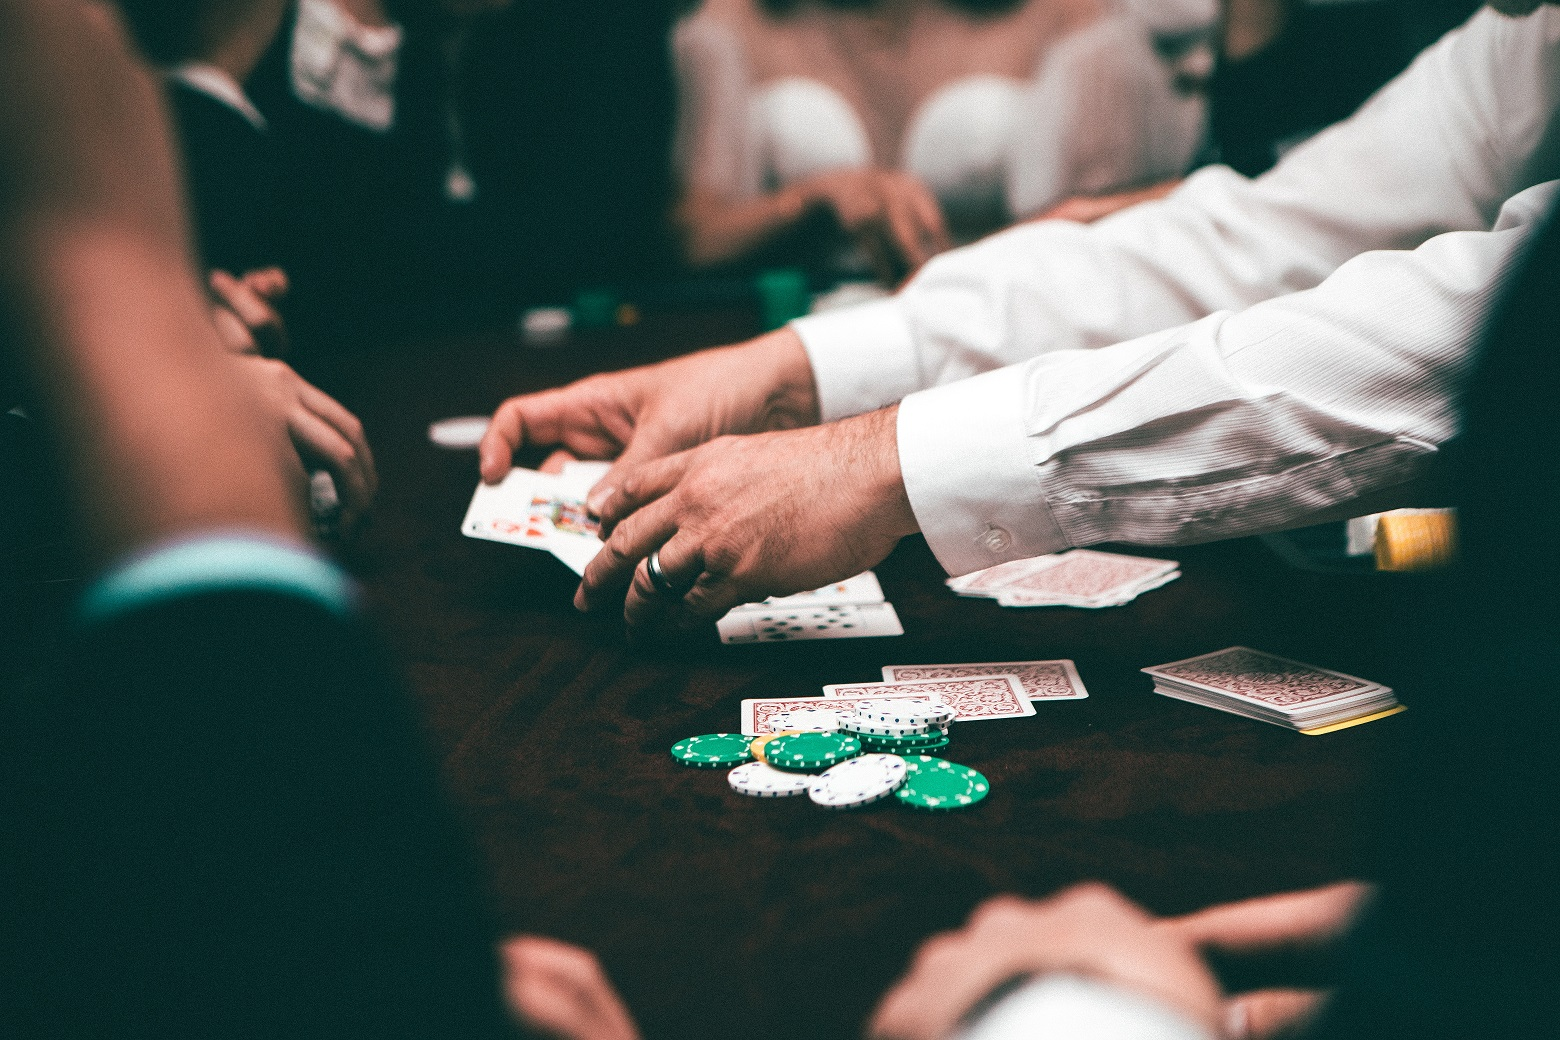 What are the features to consider before choosing a gambling website?